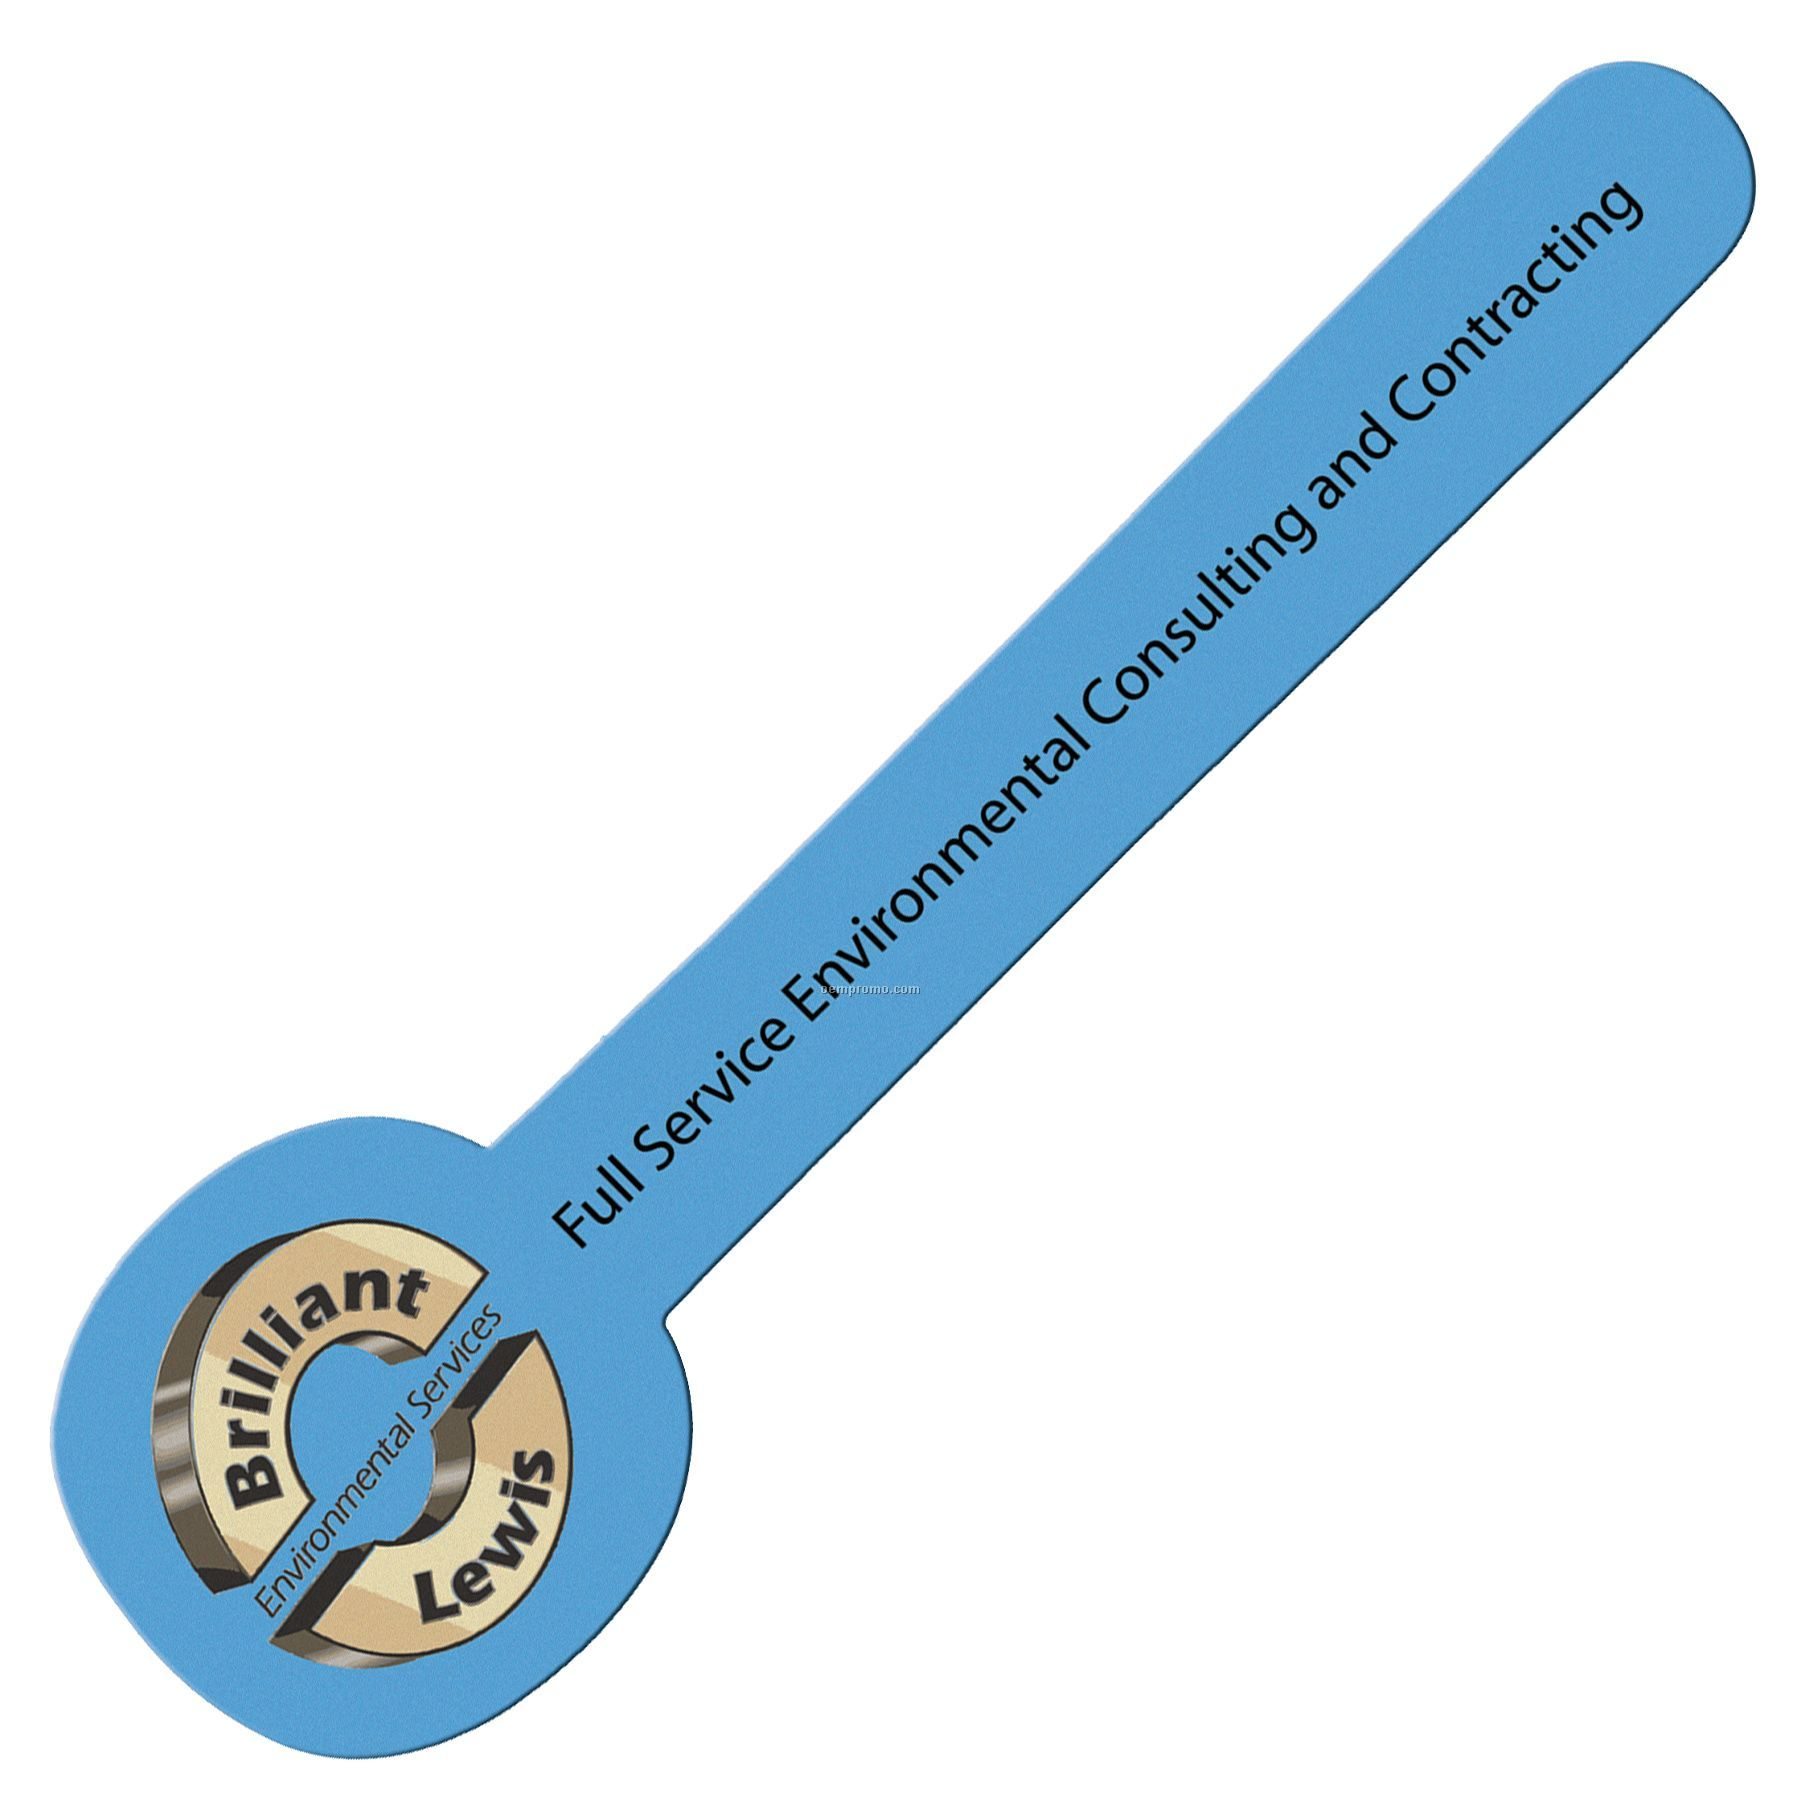 Horizontal Round Emery Board (1 Color)